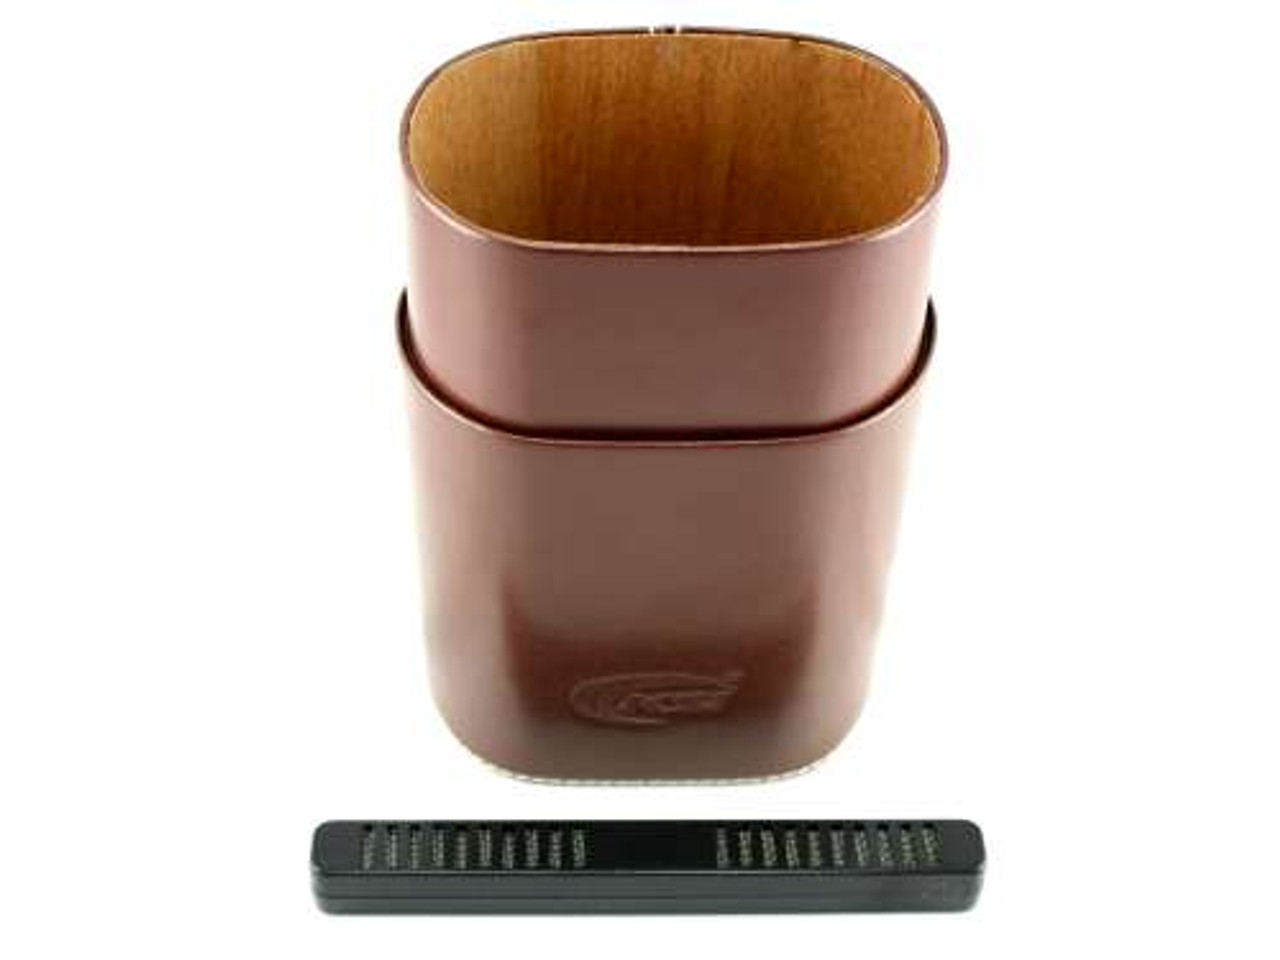 Dark Brown Belvedere Cigar Tube with Humidifier